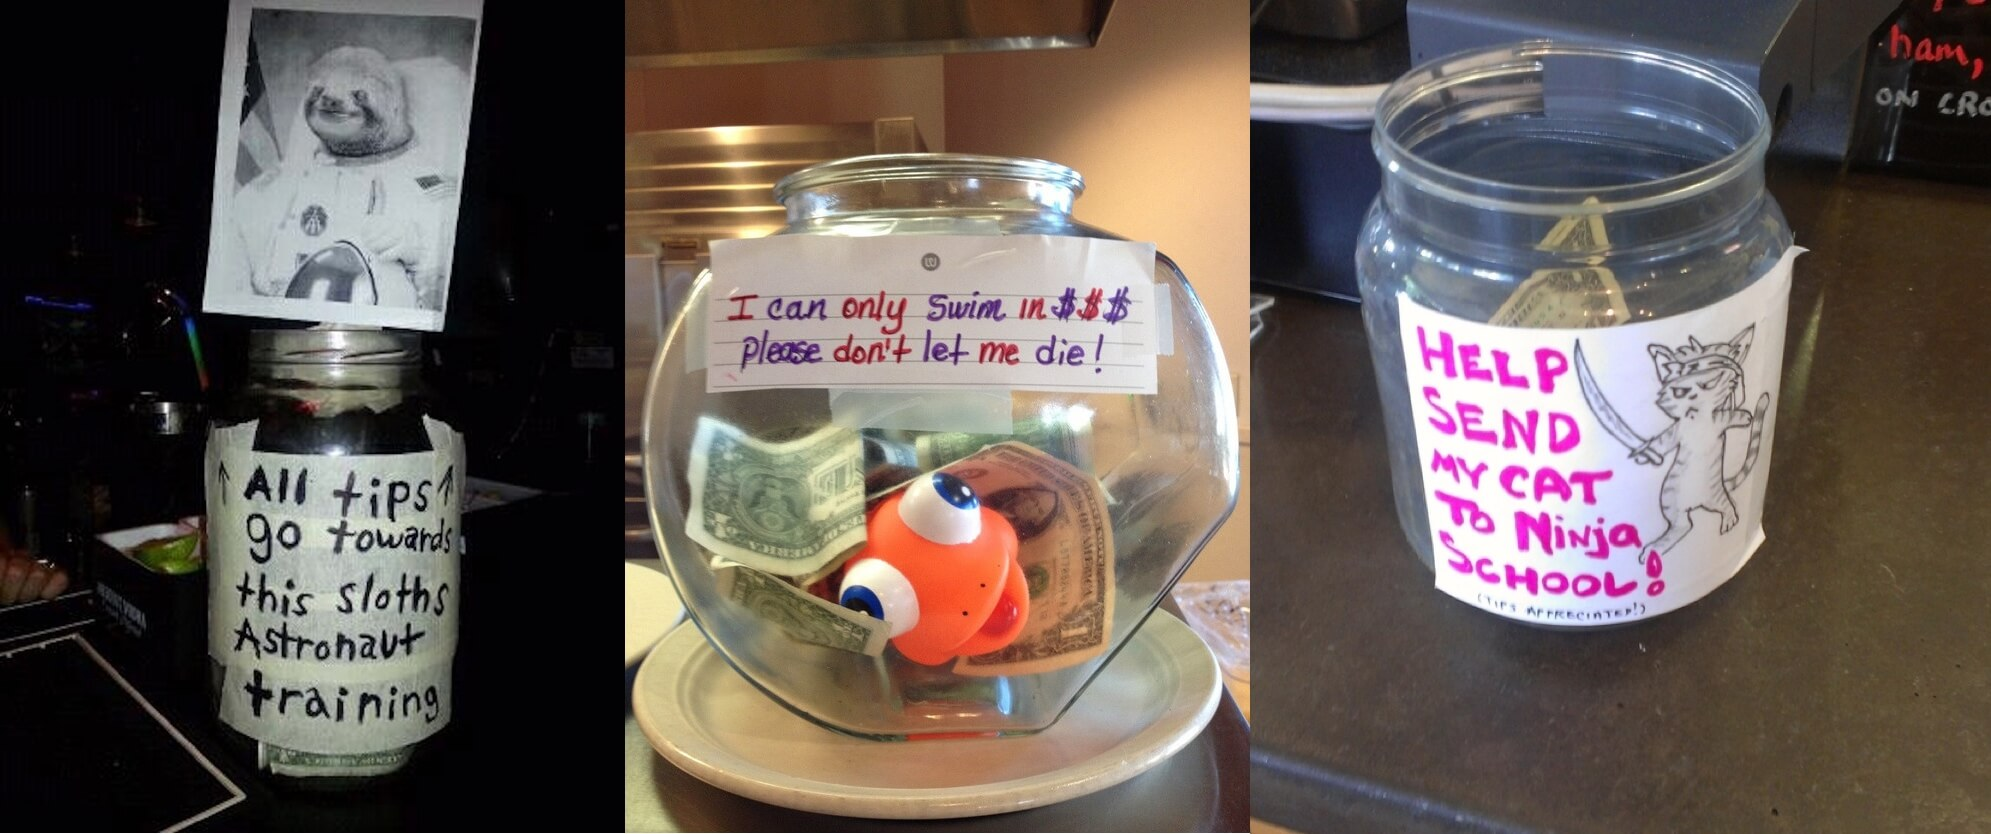 A variety of tip jars in an article about increasing tips.